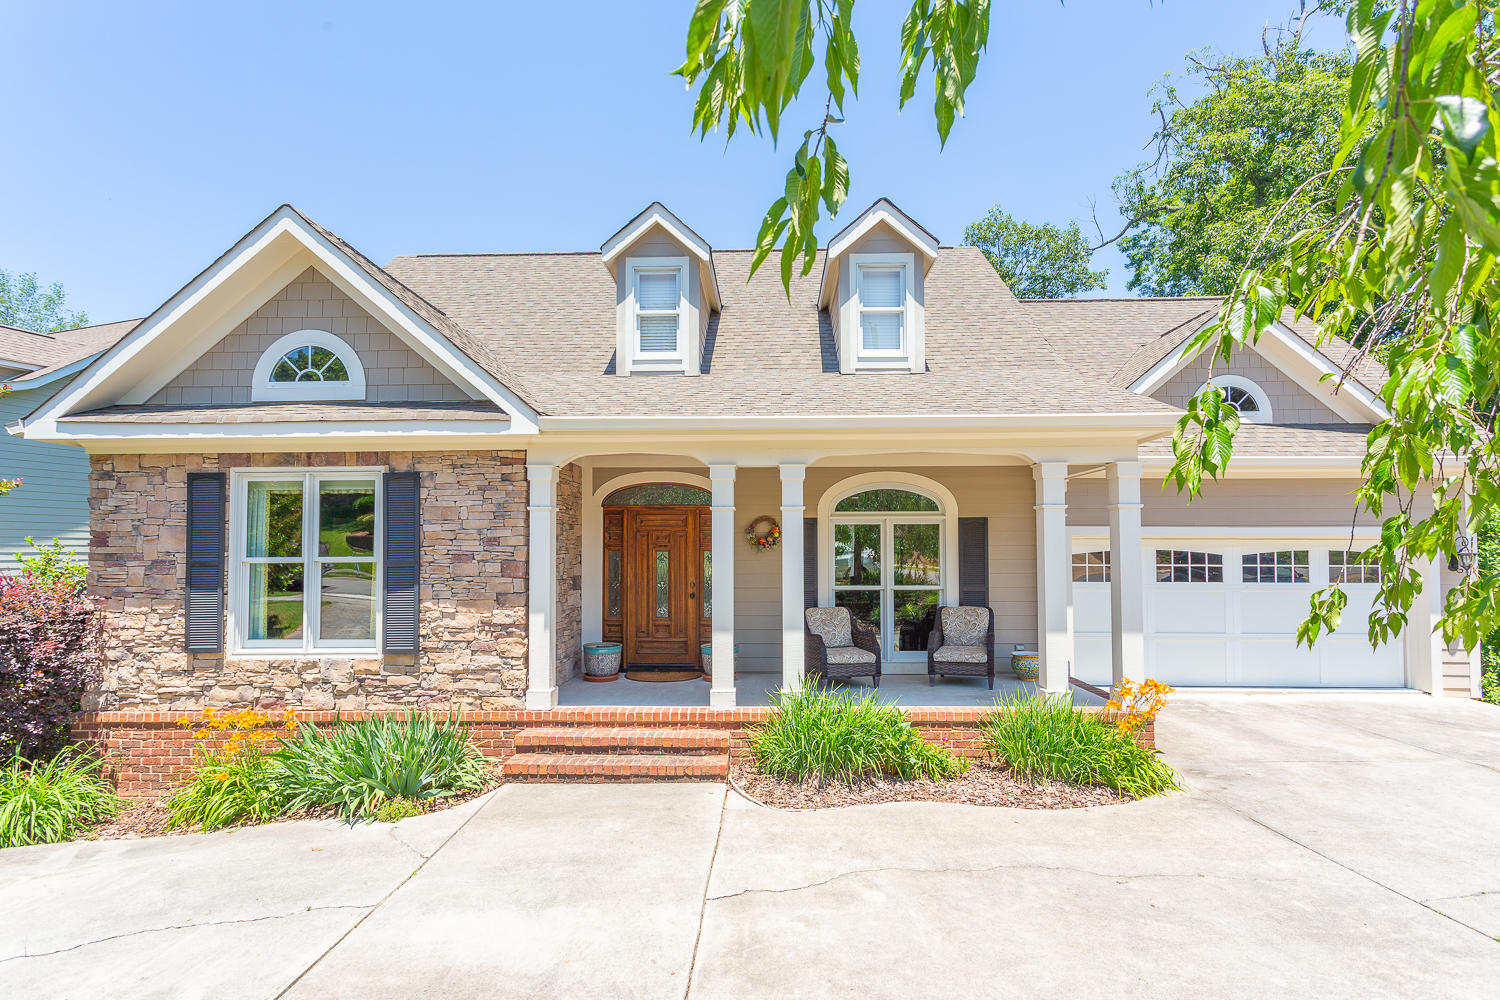 Details for 1007 Dallas, Chattanooga, TN 37405